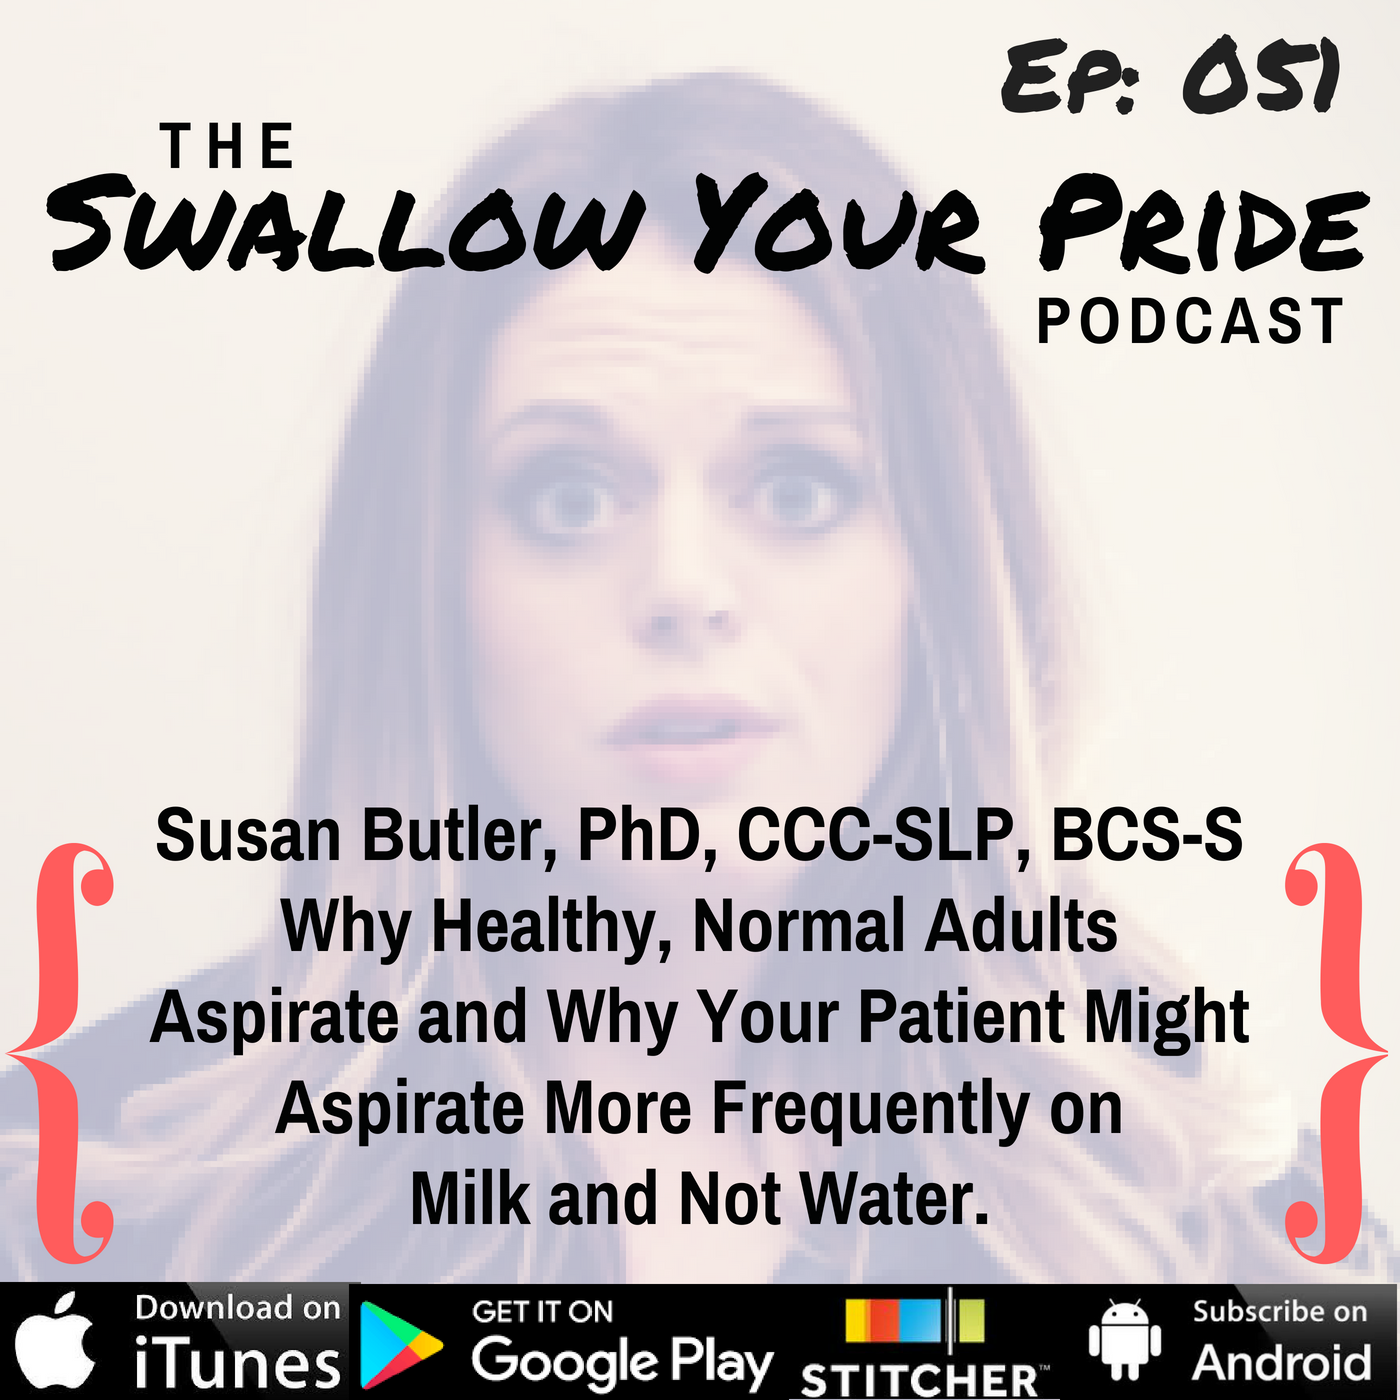 051 – Susan Butler, PhD, CCC-SLP, BCS-S – Why Healthy, Normal Adults  Aspirate and Why Your Patient Might  Aspirate More Frequently on  Milk and Not Water